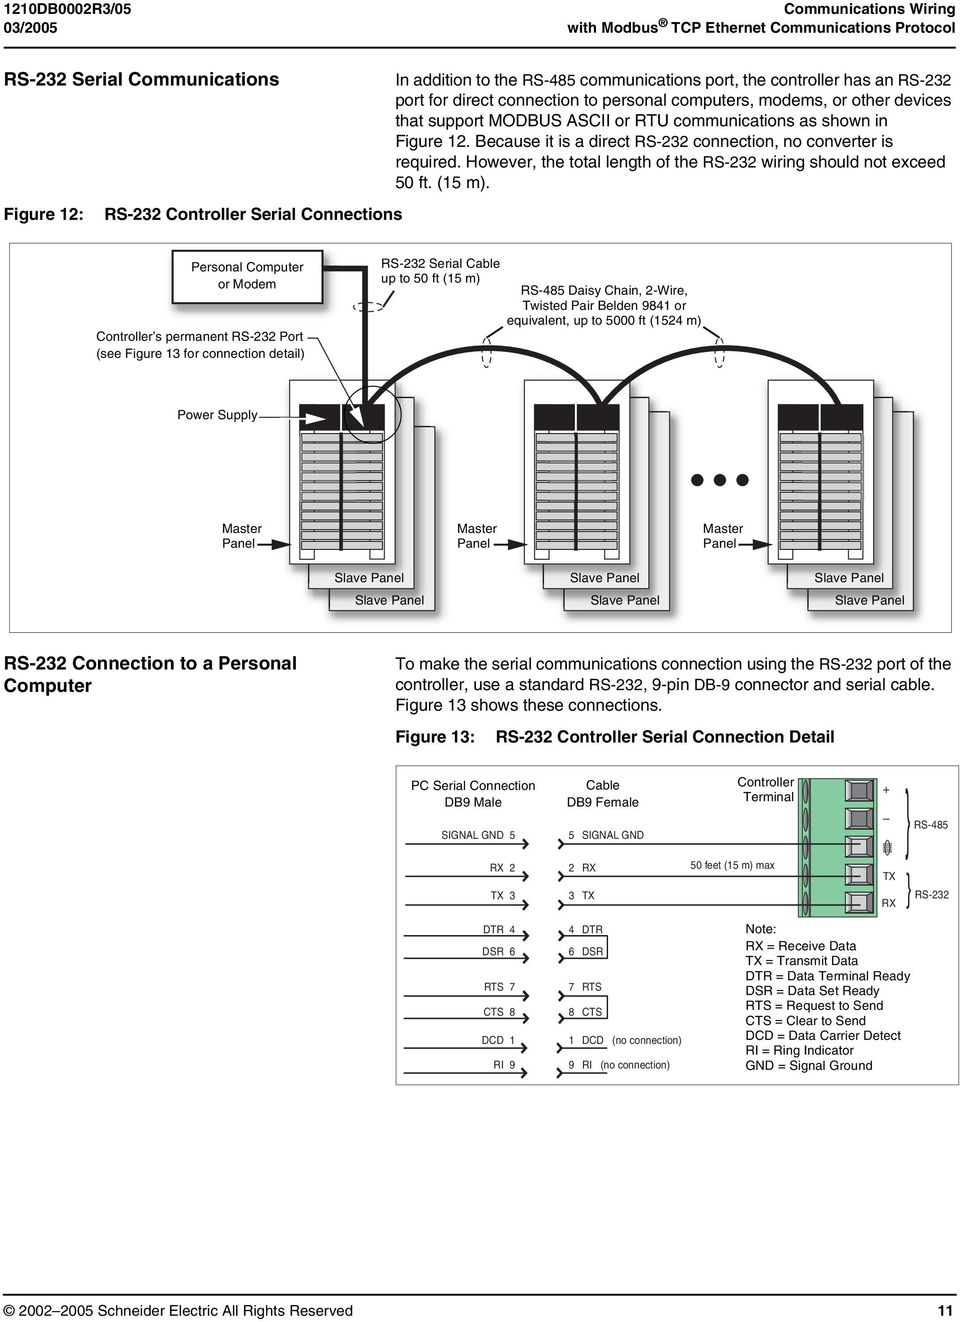 hight resolution of because it is a direct rs 232 connection no converter is required however